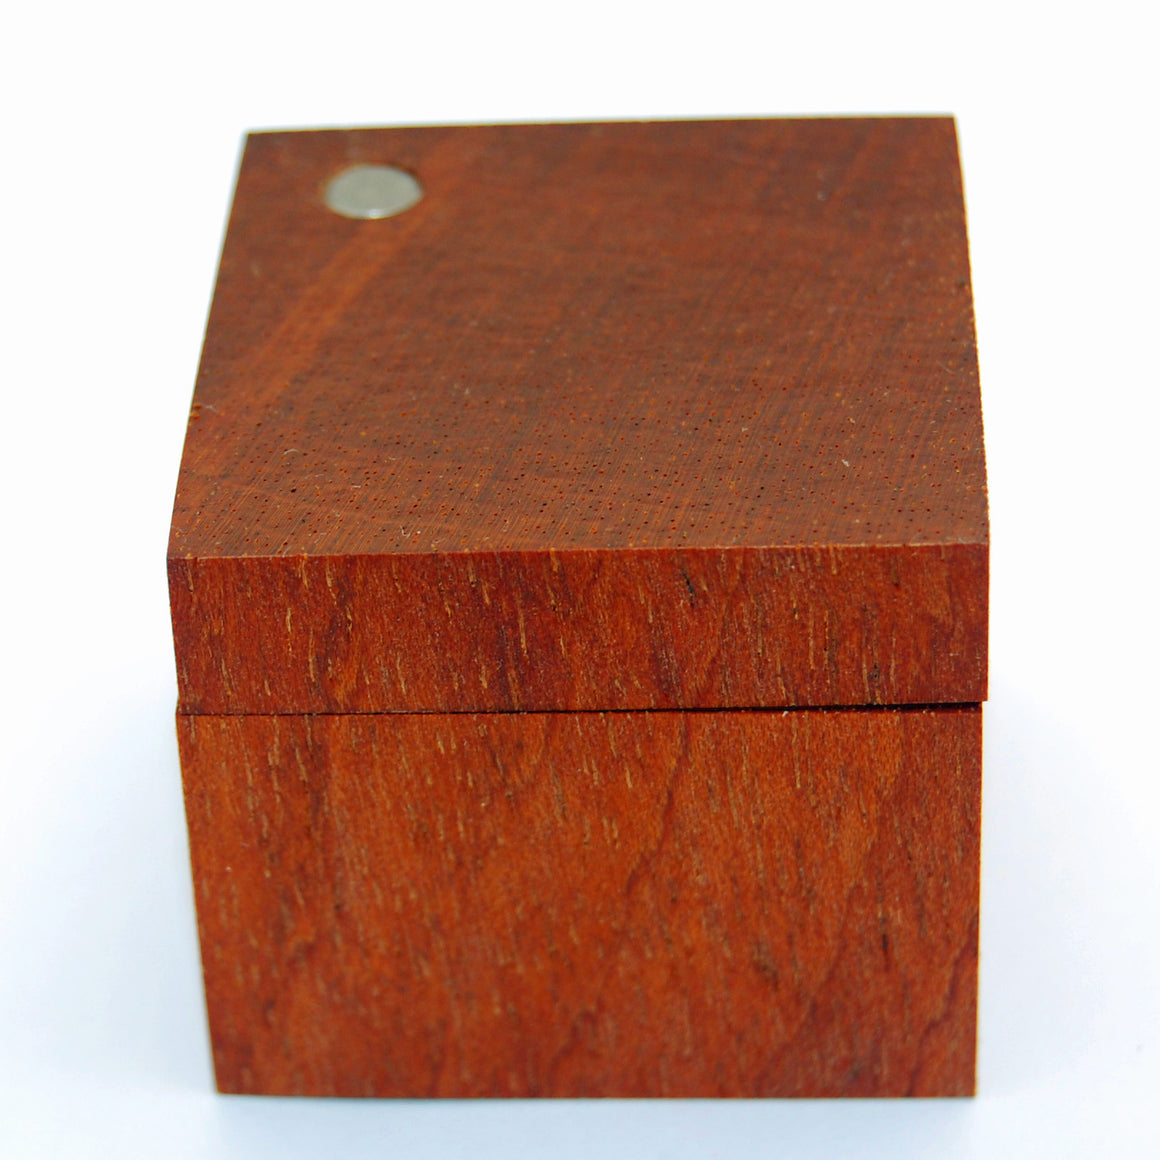 Cherry Wood Ring Box - Minter and Richter Designs